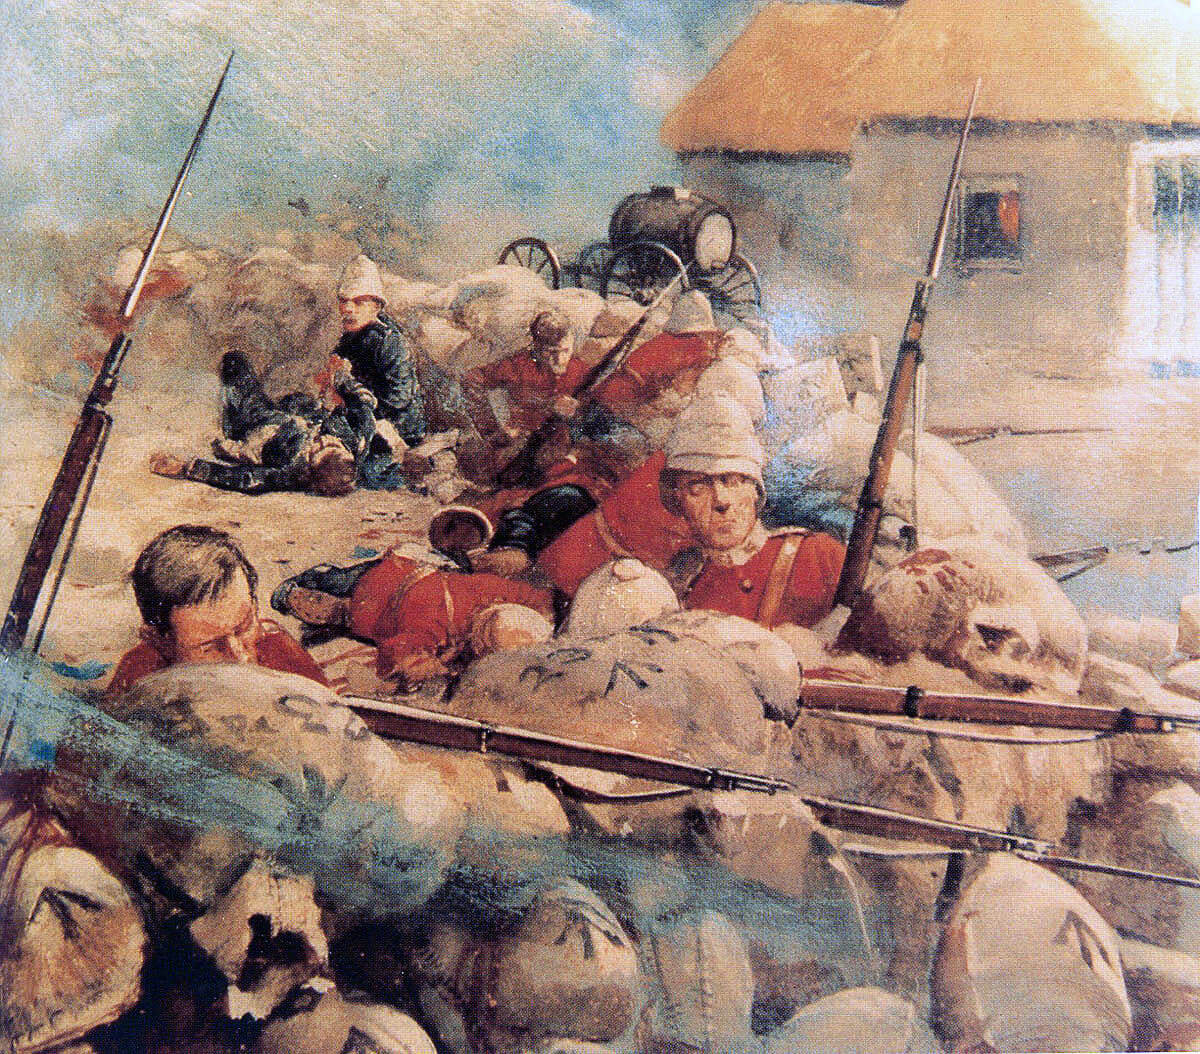 Defence of Rorke's Drift on 22nd January 1879 in the Zulu War